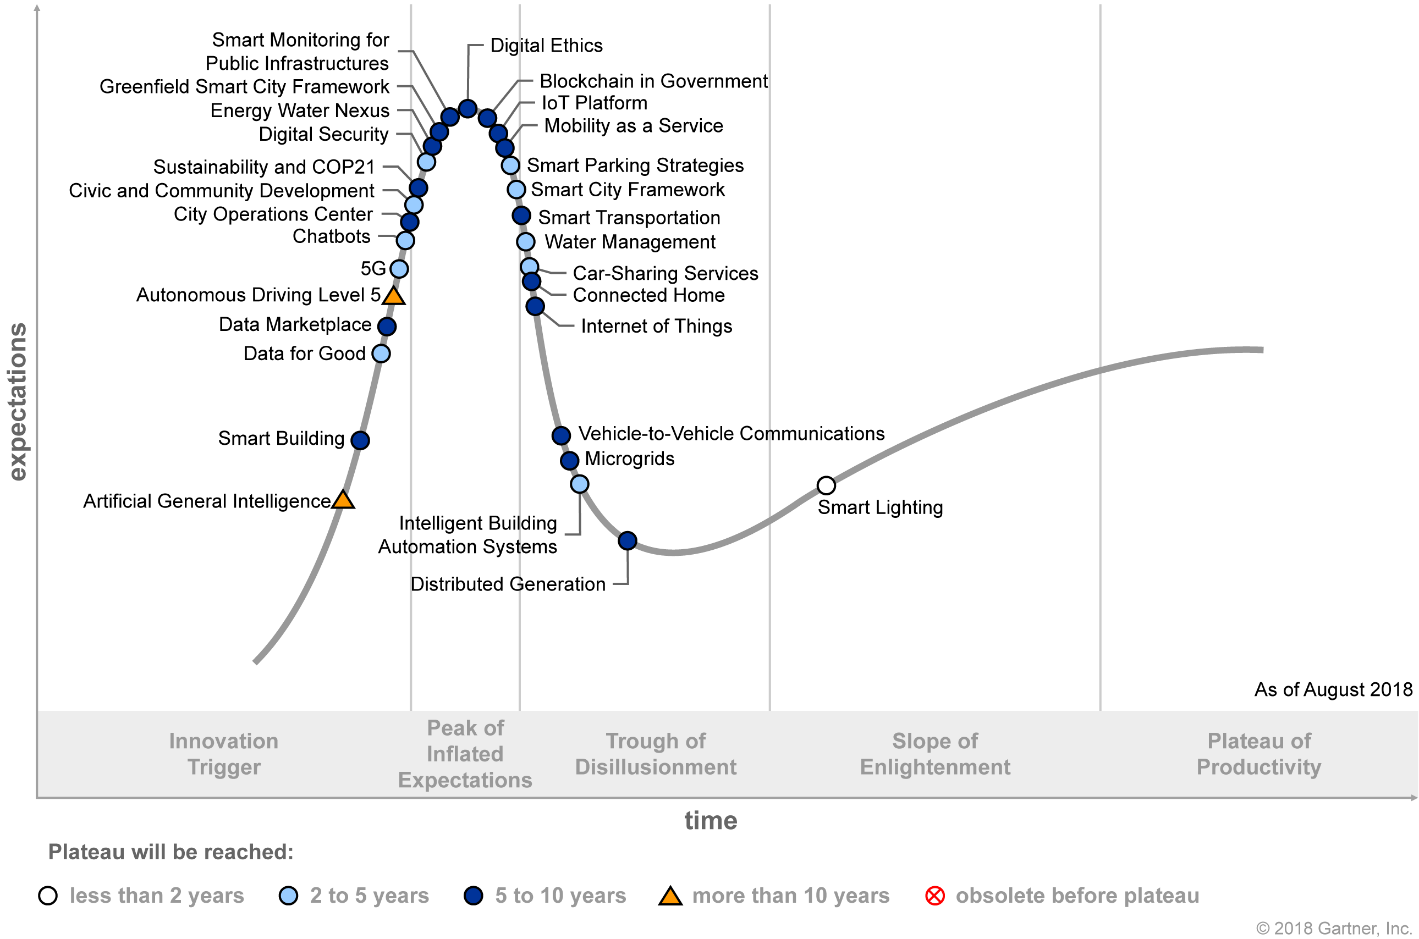 Gartner Hype Cycle for Smart City Technologies and Solutions 2018 (G00340460)